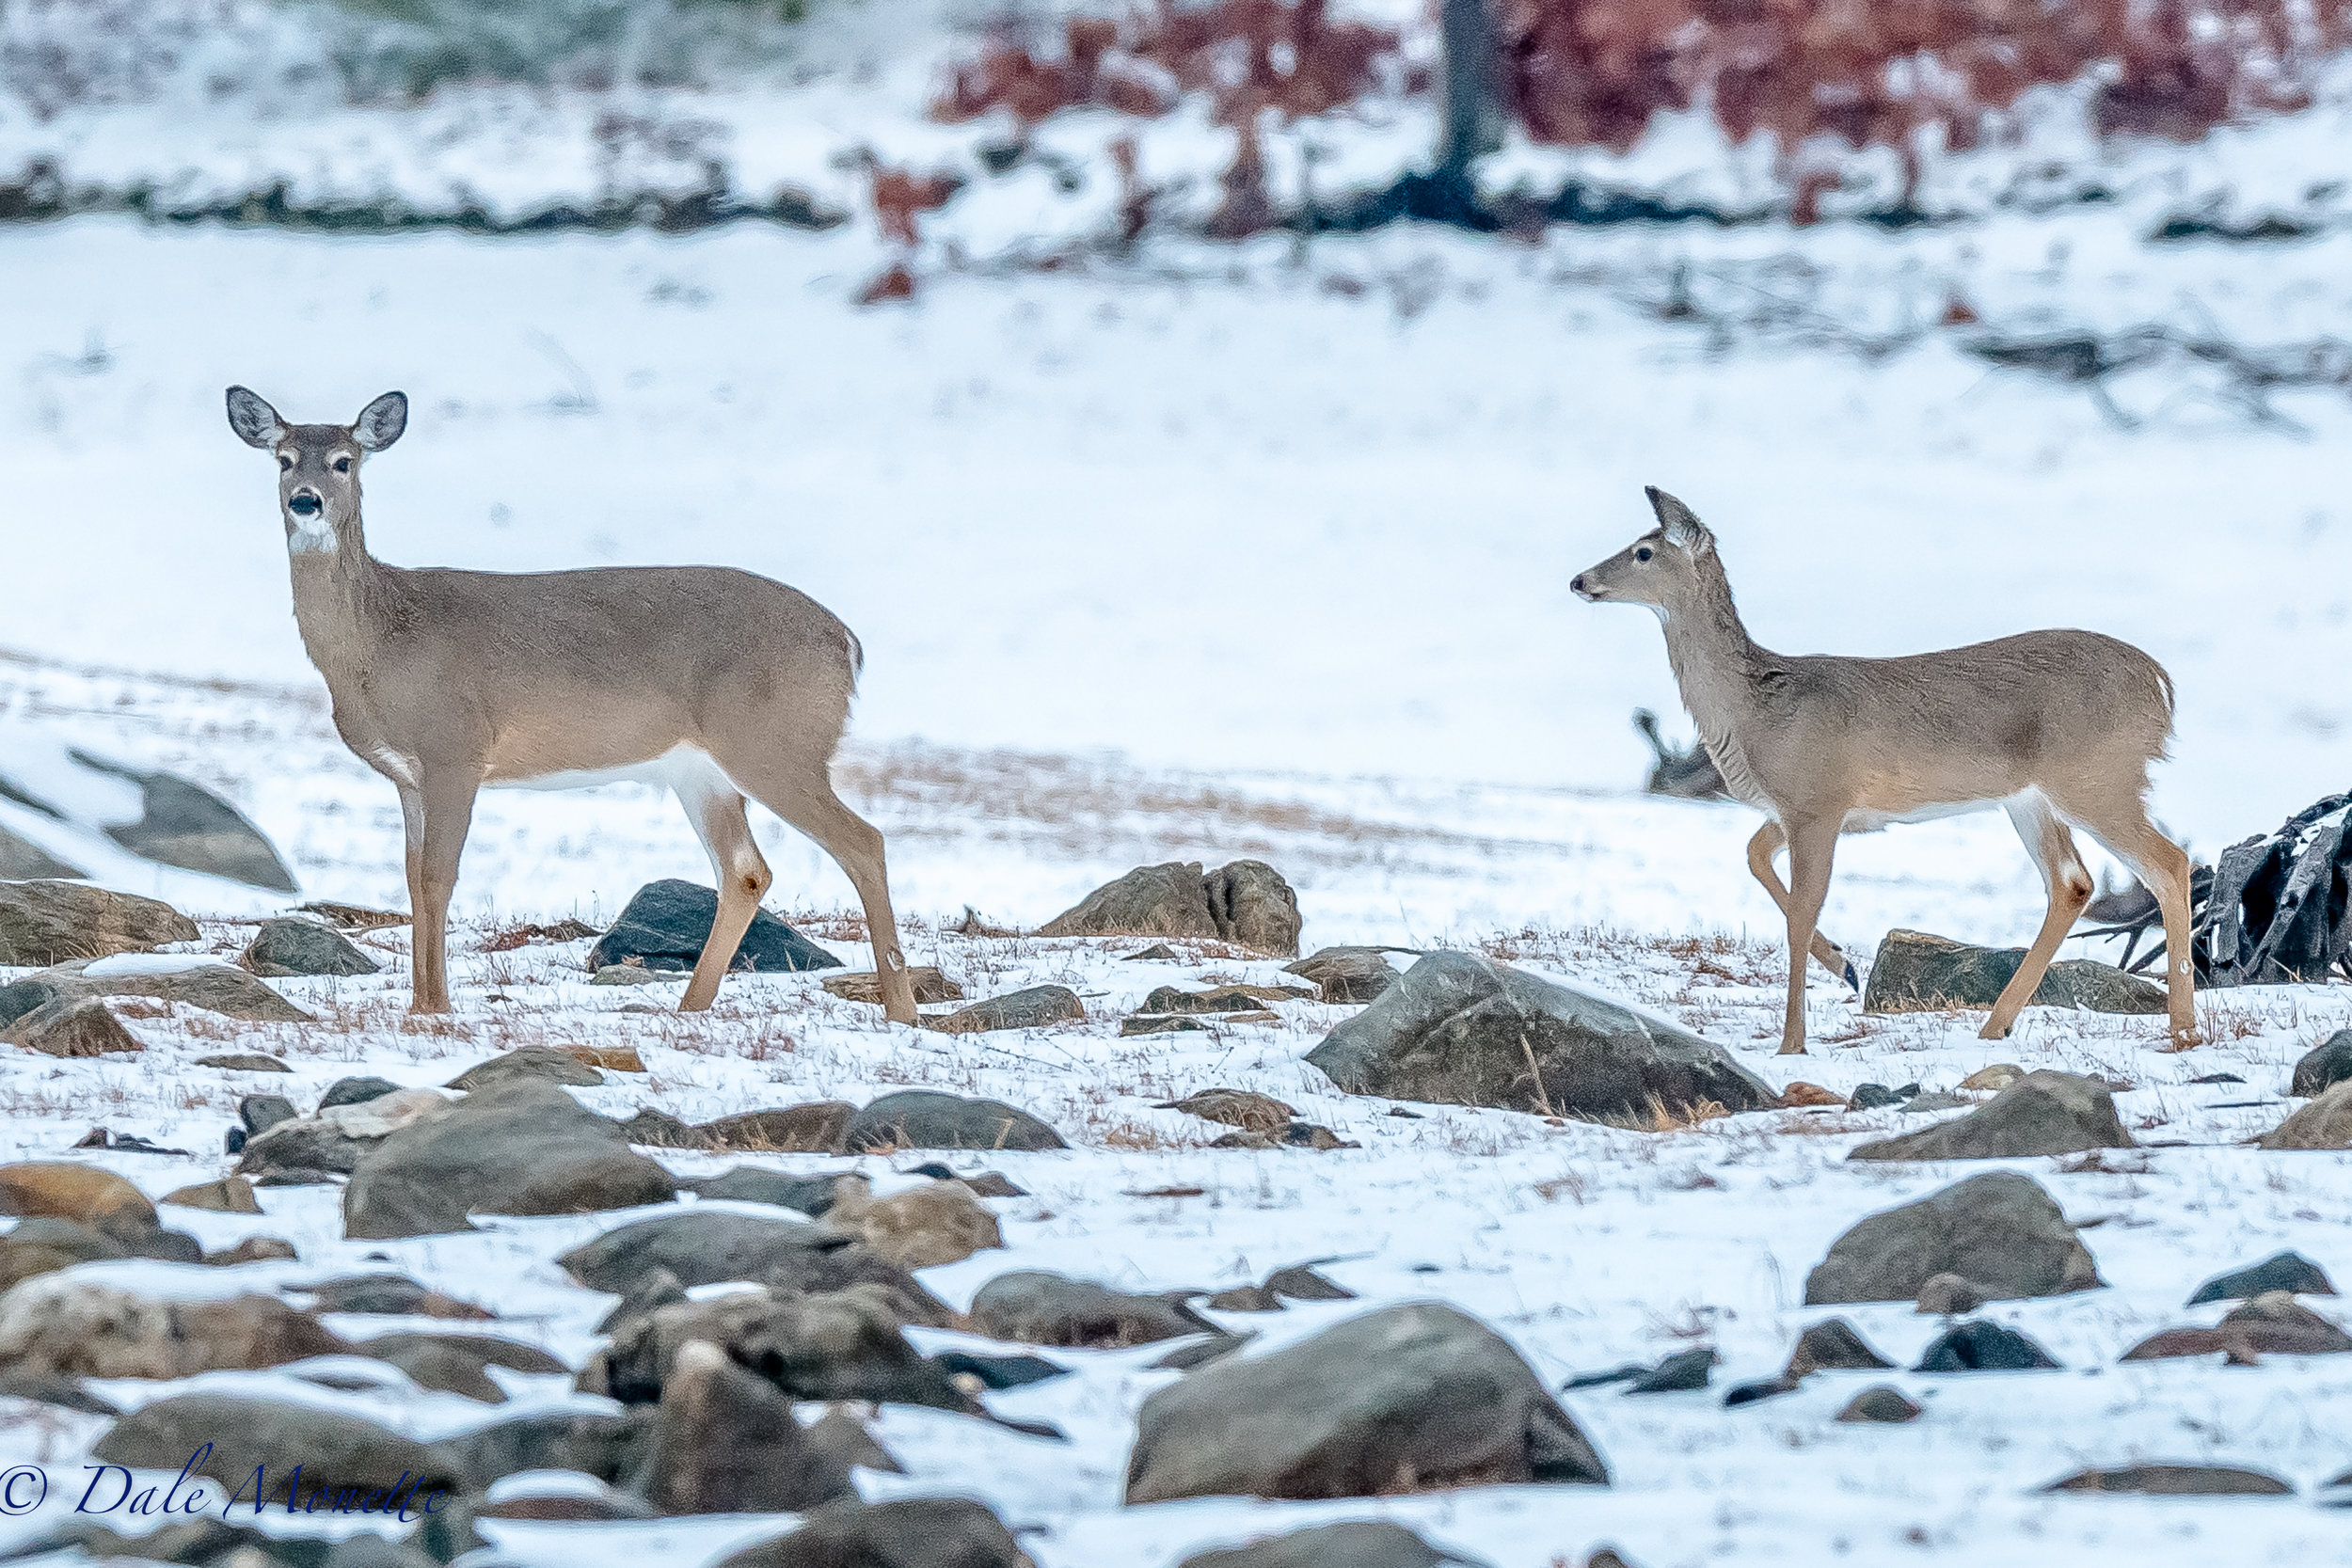 Five white-tailed deer walked out in front of me this morning at 6:30AM on my way into Quabbin. It was a pleasant surprise. I just stood there and snapped a few pictures. They spotted me but didnt leave and just kept moseying along and headed into the woods. 4/2/17